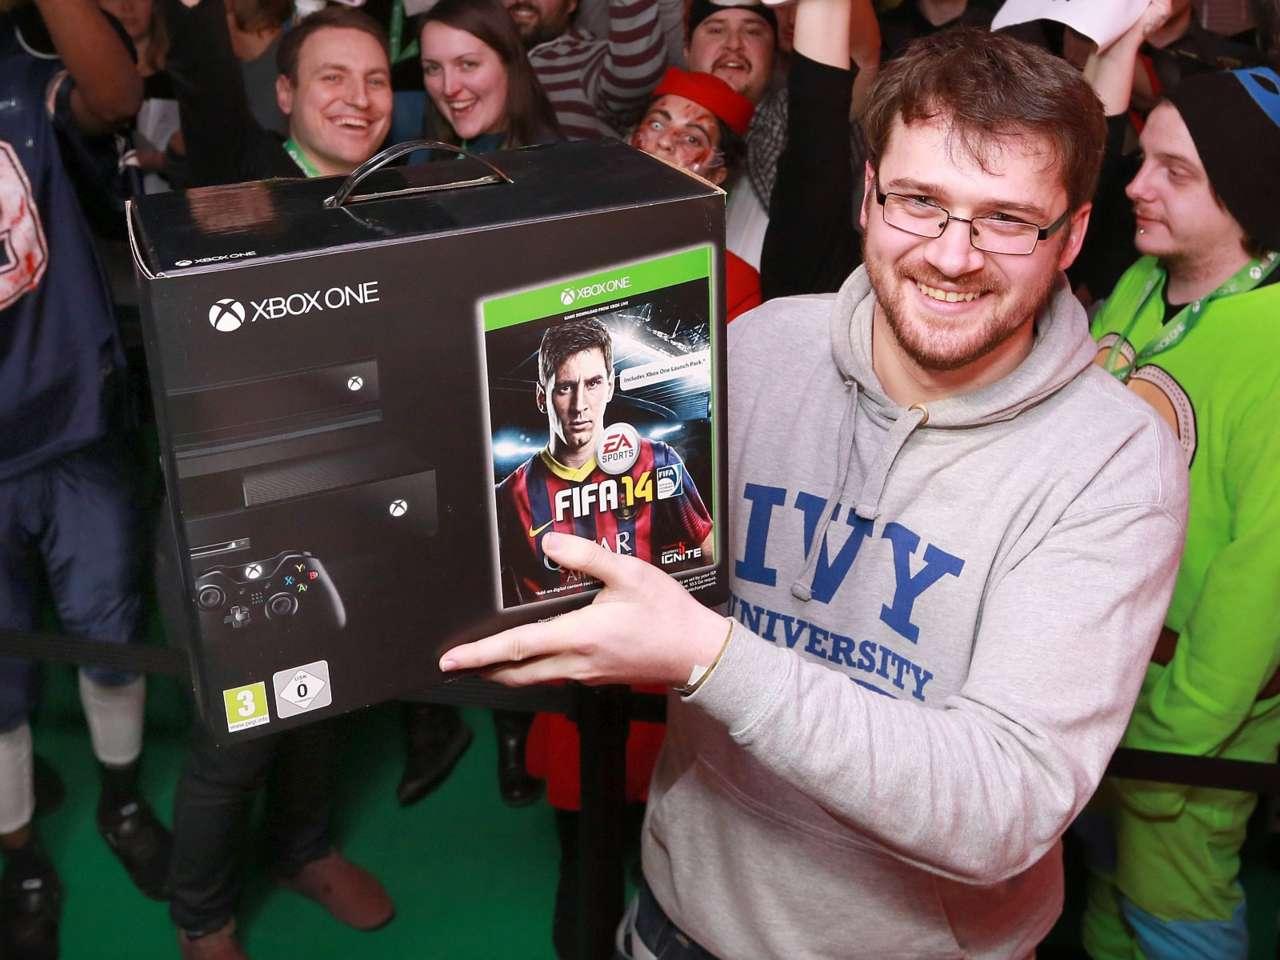 The first person in the UK to buy an Xbox One.